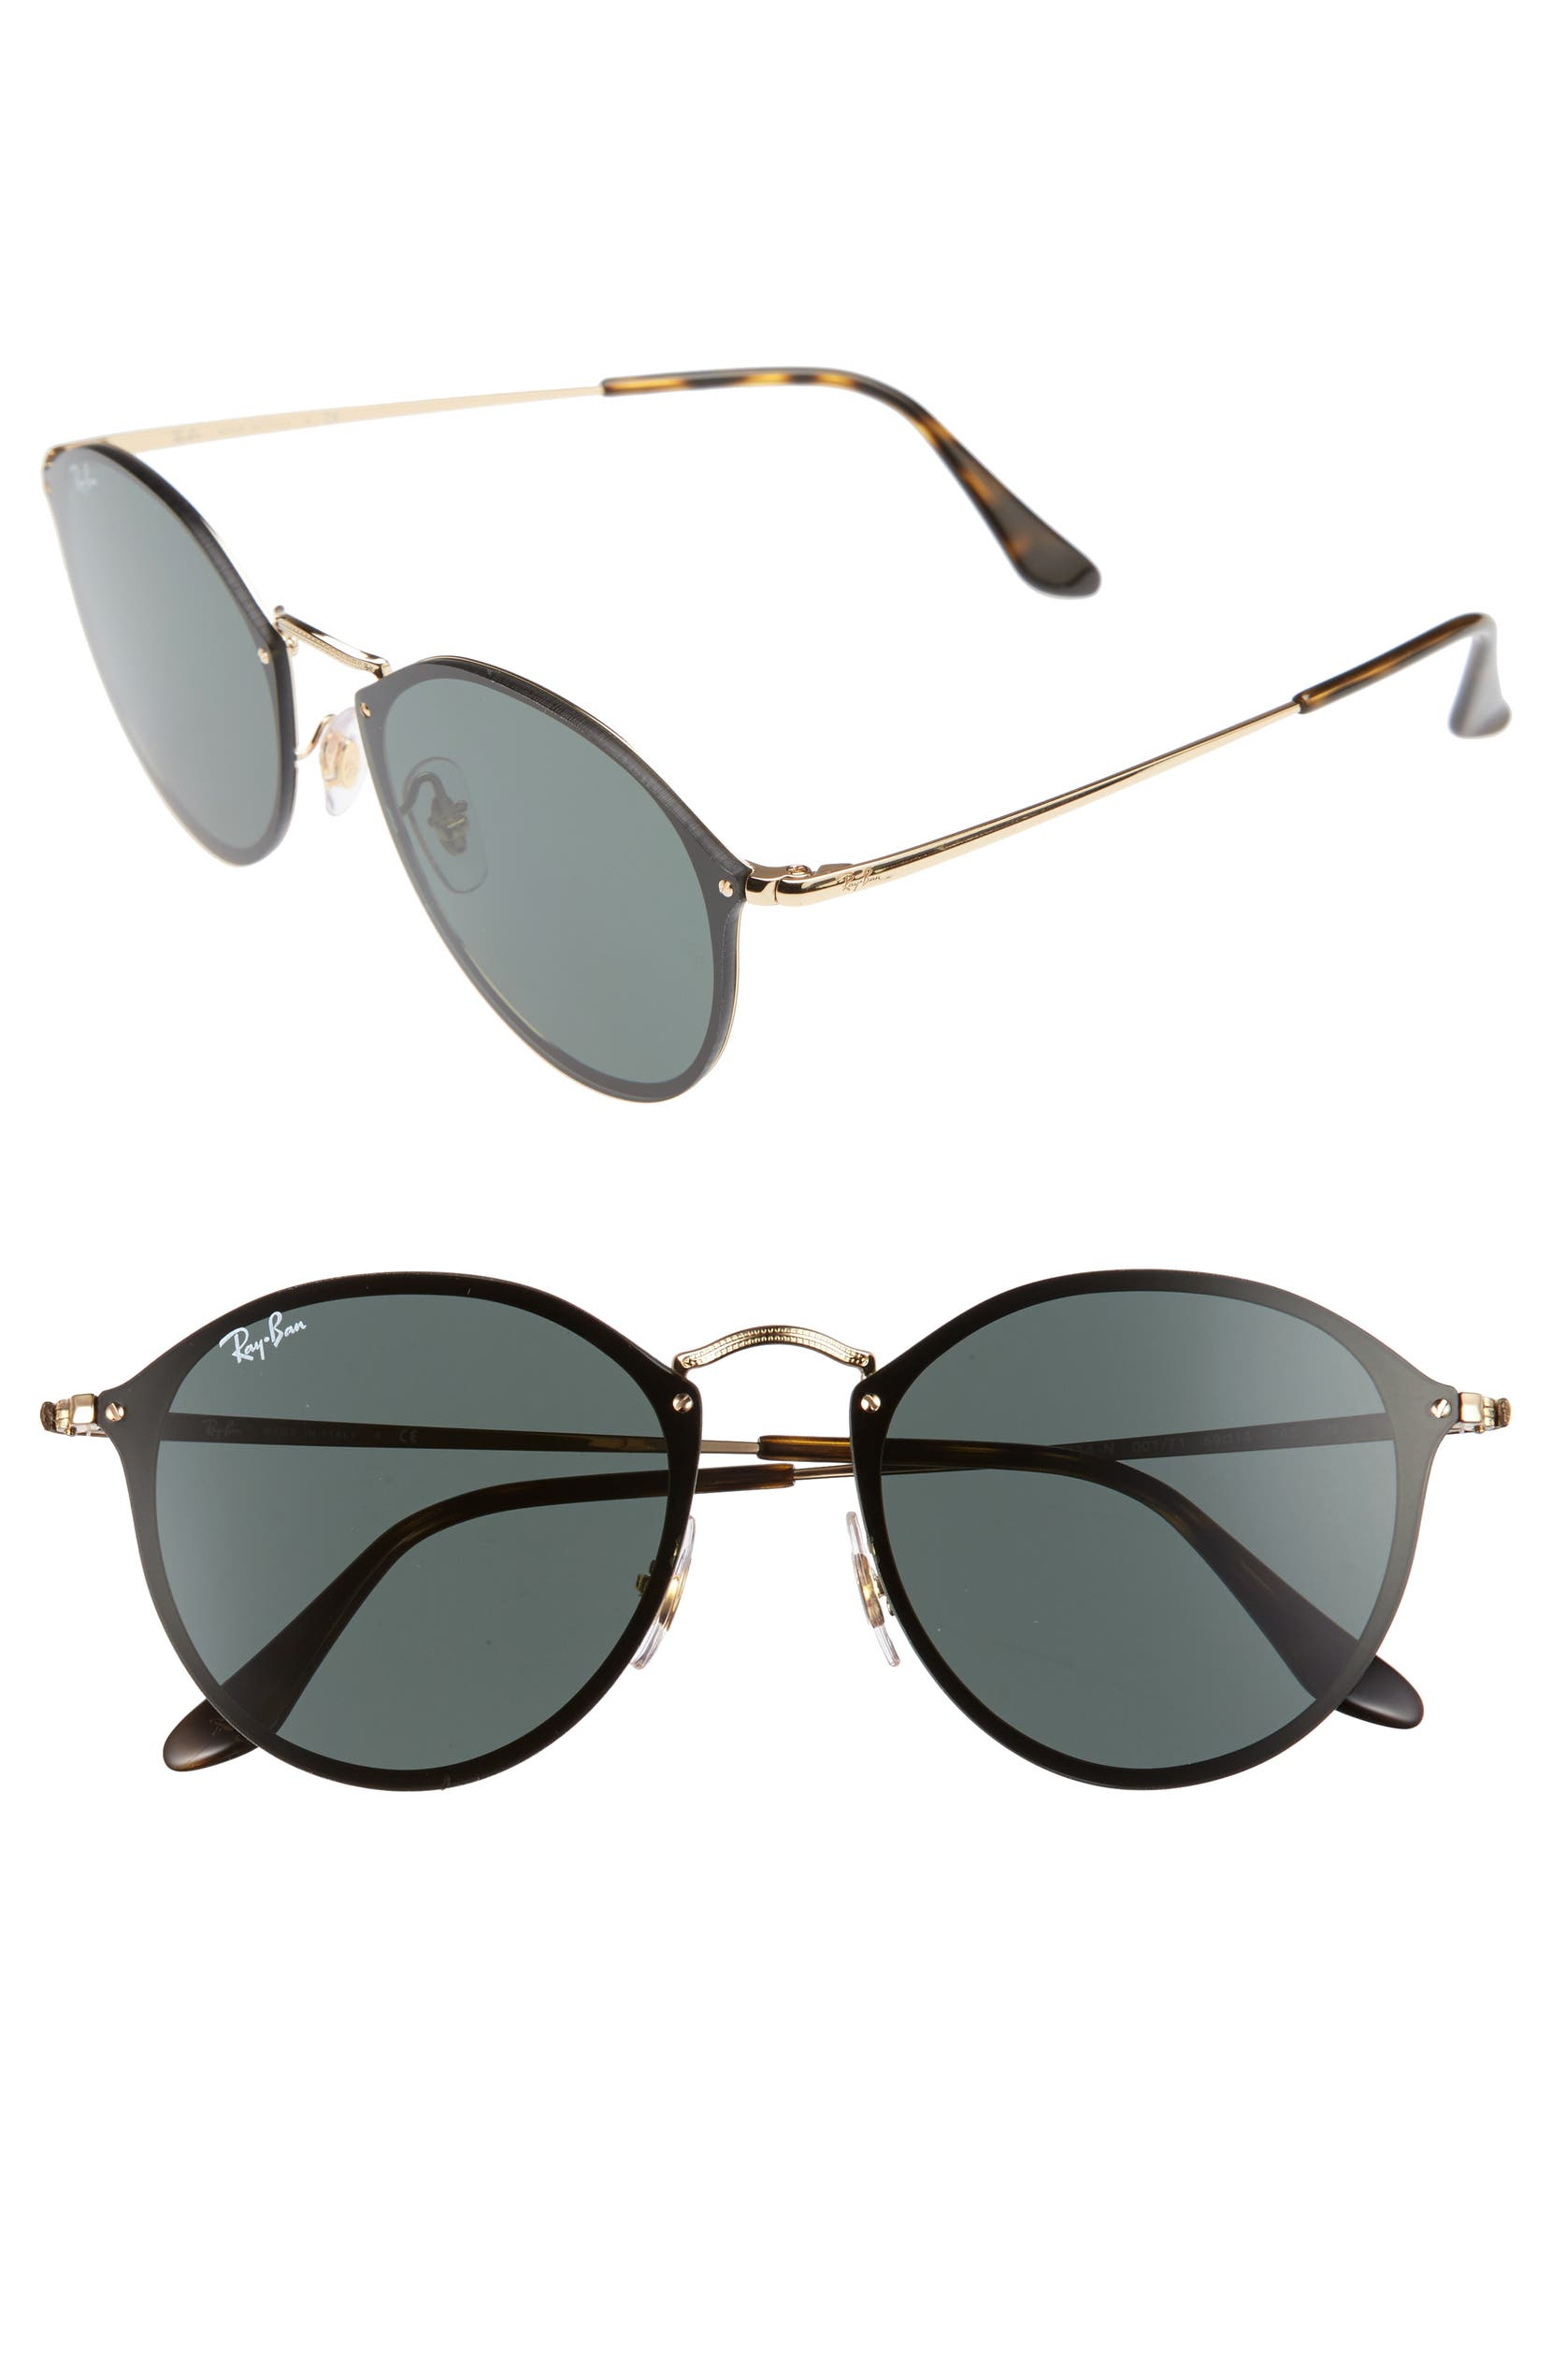 Ray-Ban Blaze 59mm Round Sunglasses  3a4571e96